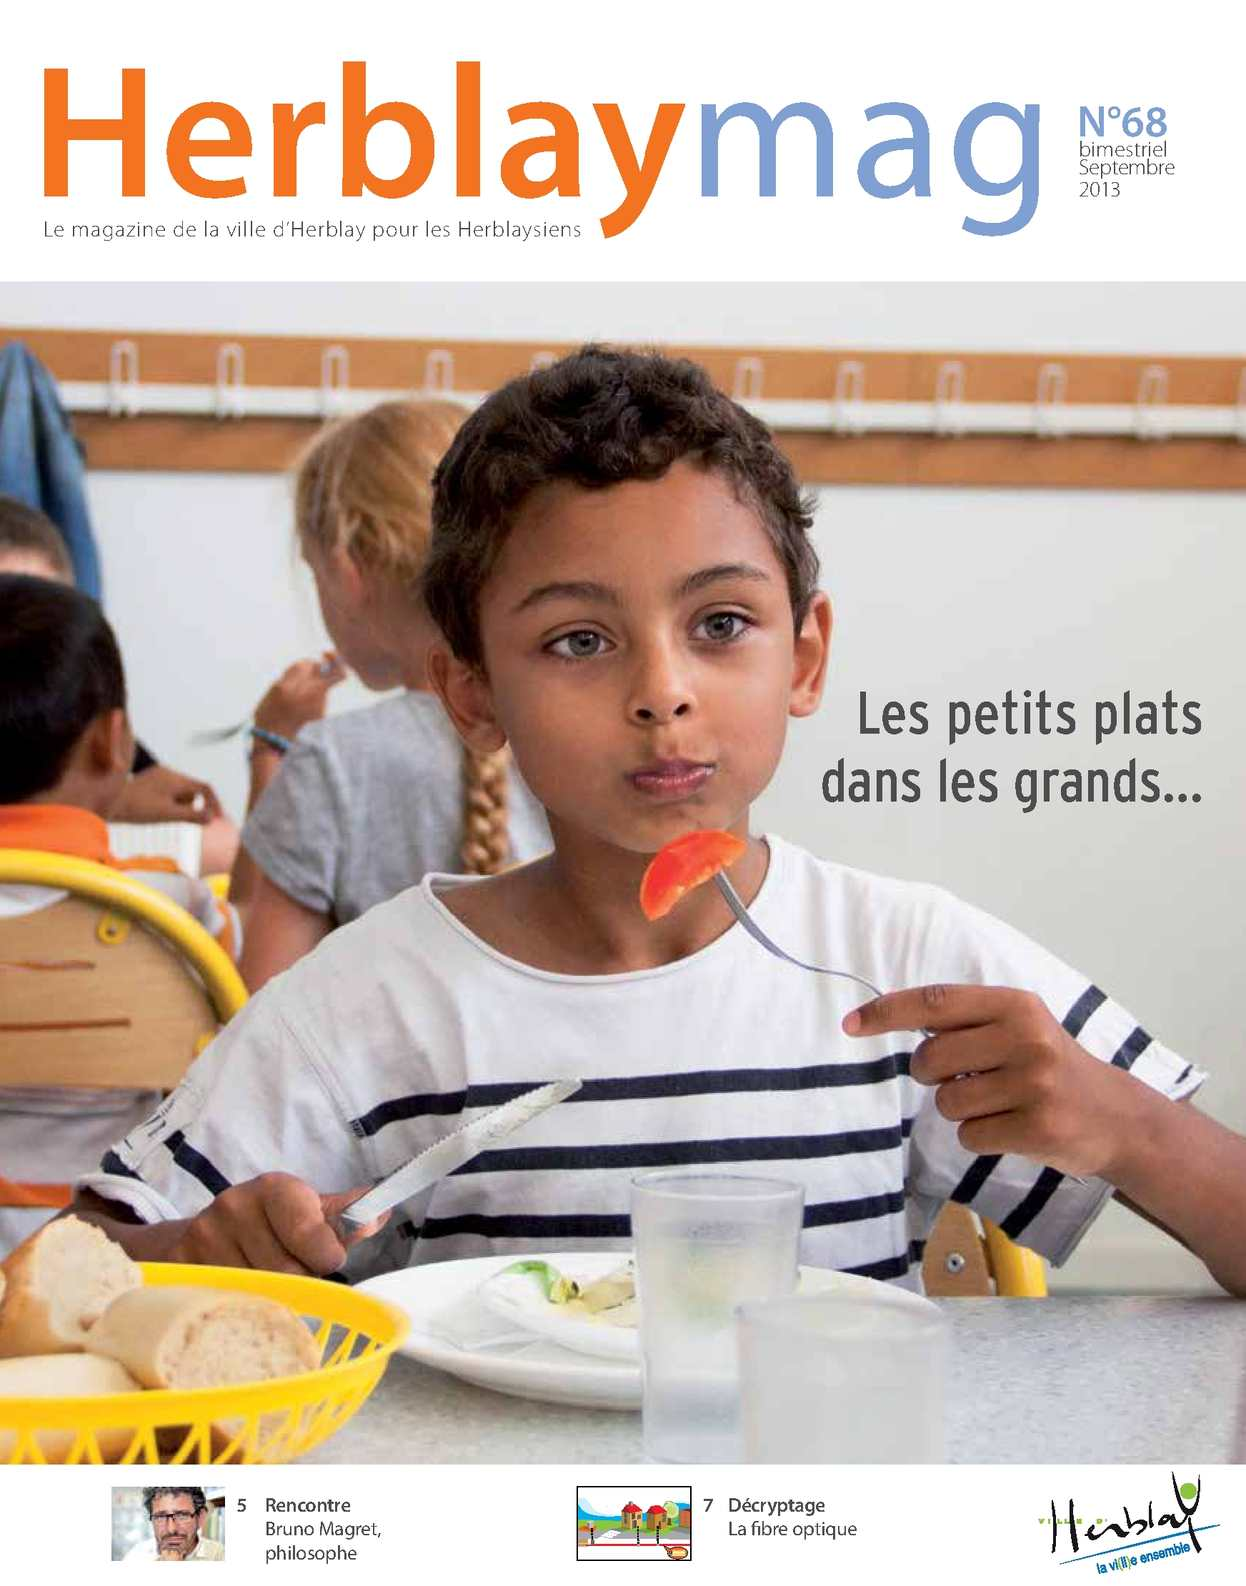 Calam o herblay mag n 68 septembre 2013 for Piscine d herblay